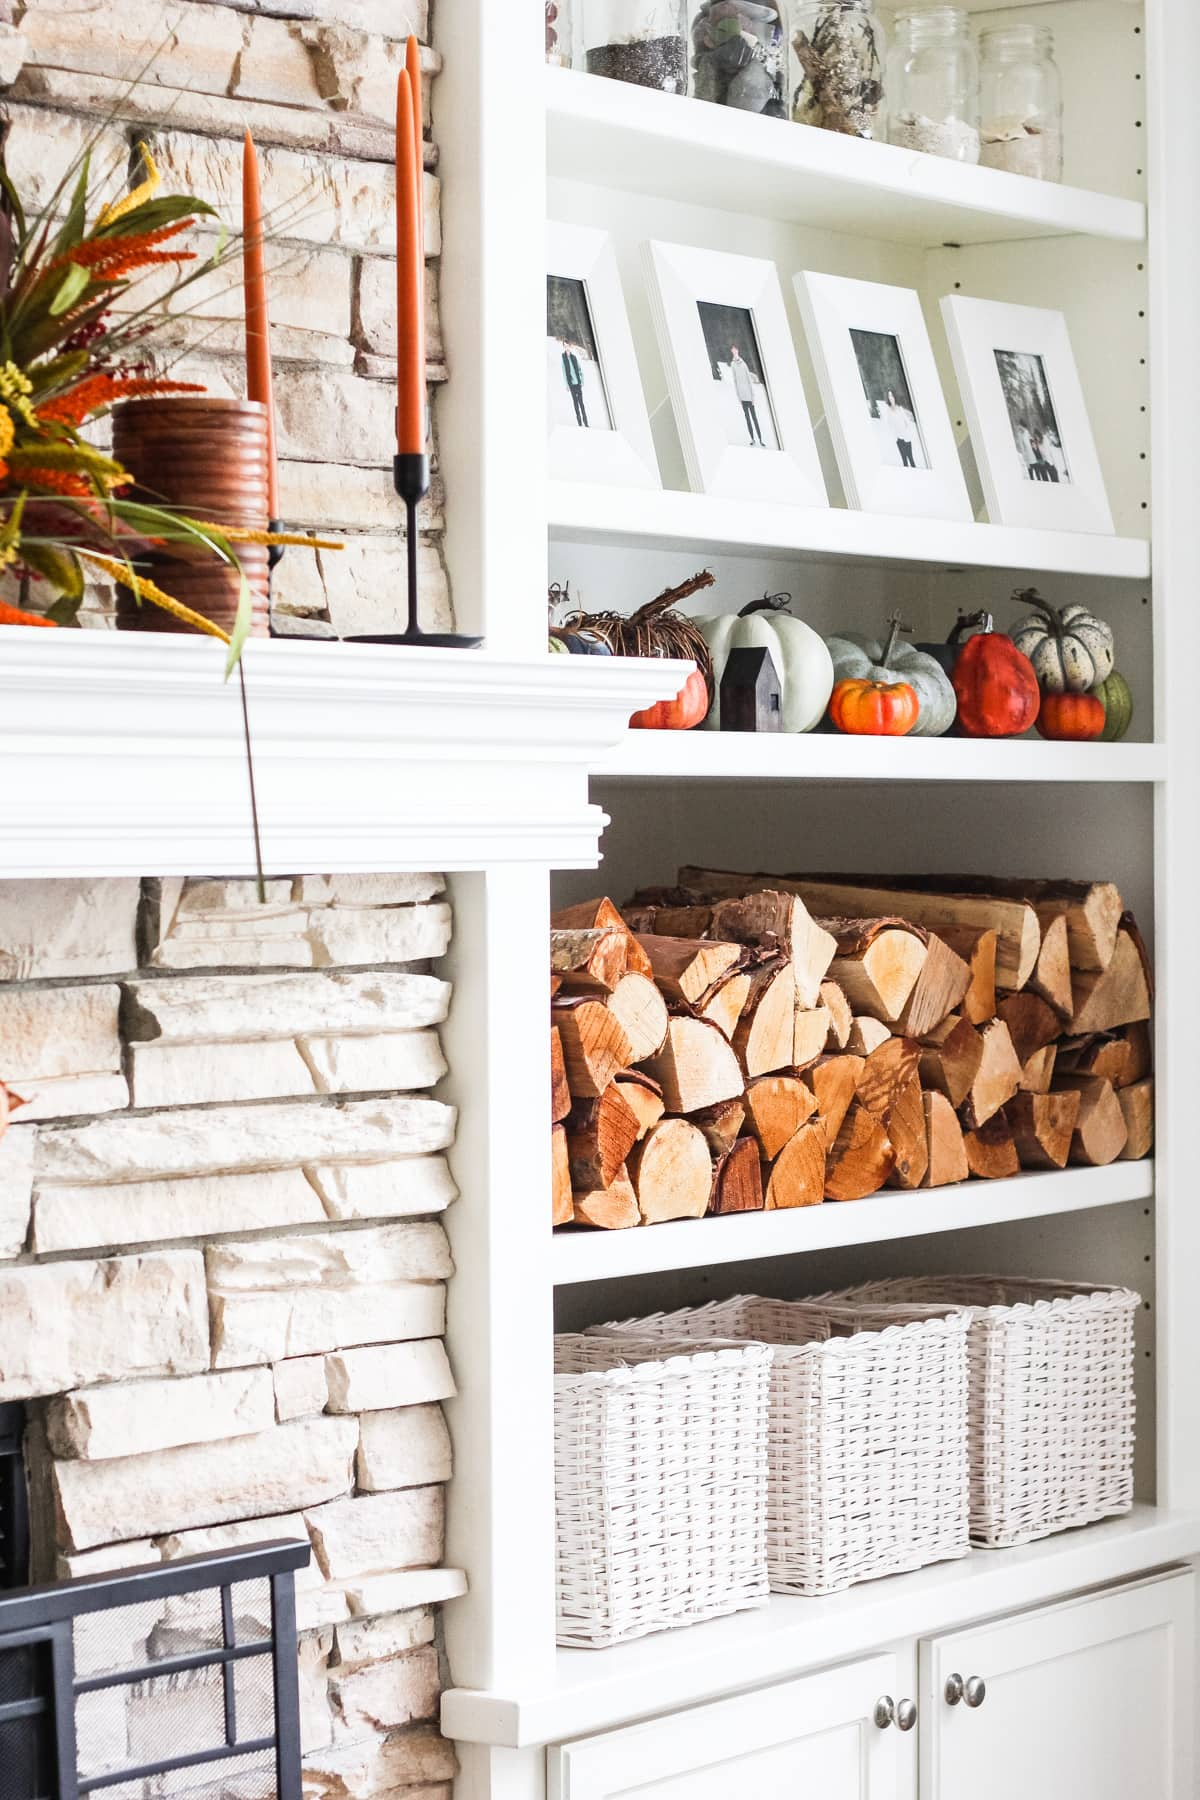 a simple fall mantel with a set of white shelves filled with stacked wood, pictures in white frames, pumpkins, glass jars and white baskets